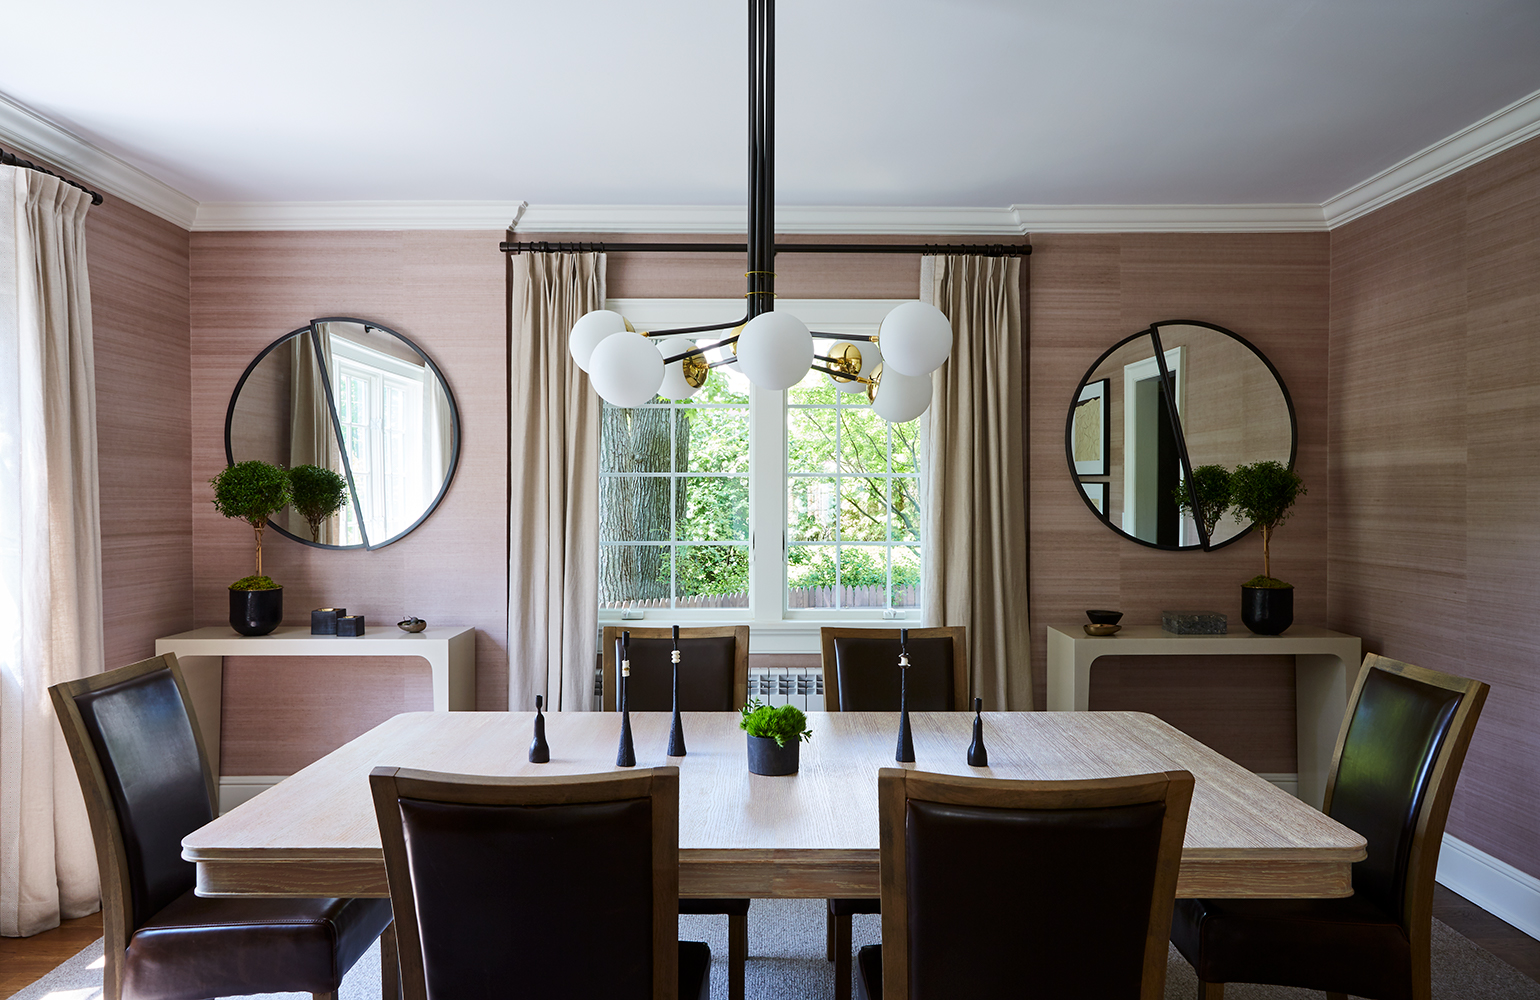 A blush-colored wallcovering from Kneedler|Fauchère helps create a warm, beautiful atmosphere in the dining room. Custom mirrors bring geometric shapes to the space, as does the orb lighting fixture from Bourgeis Boheme. Rogers & Goffigon fabric frames the views through the window.